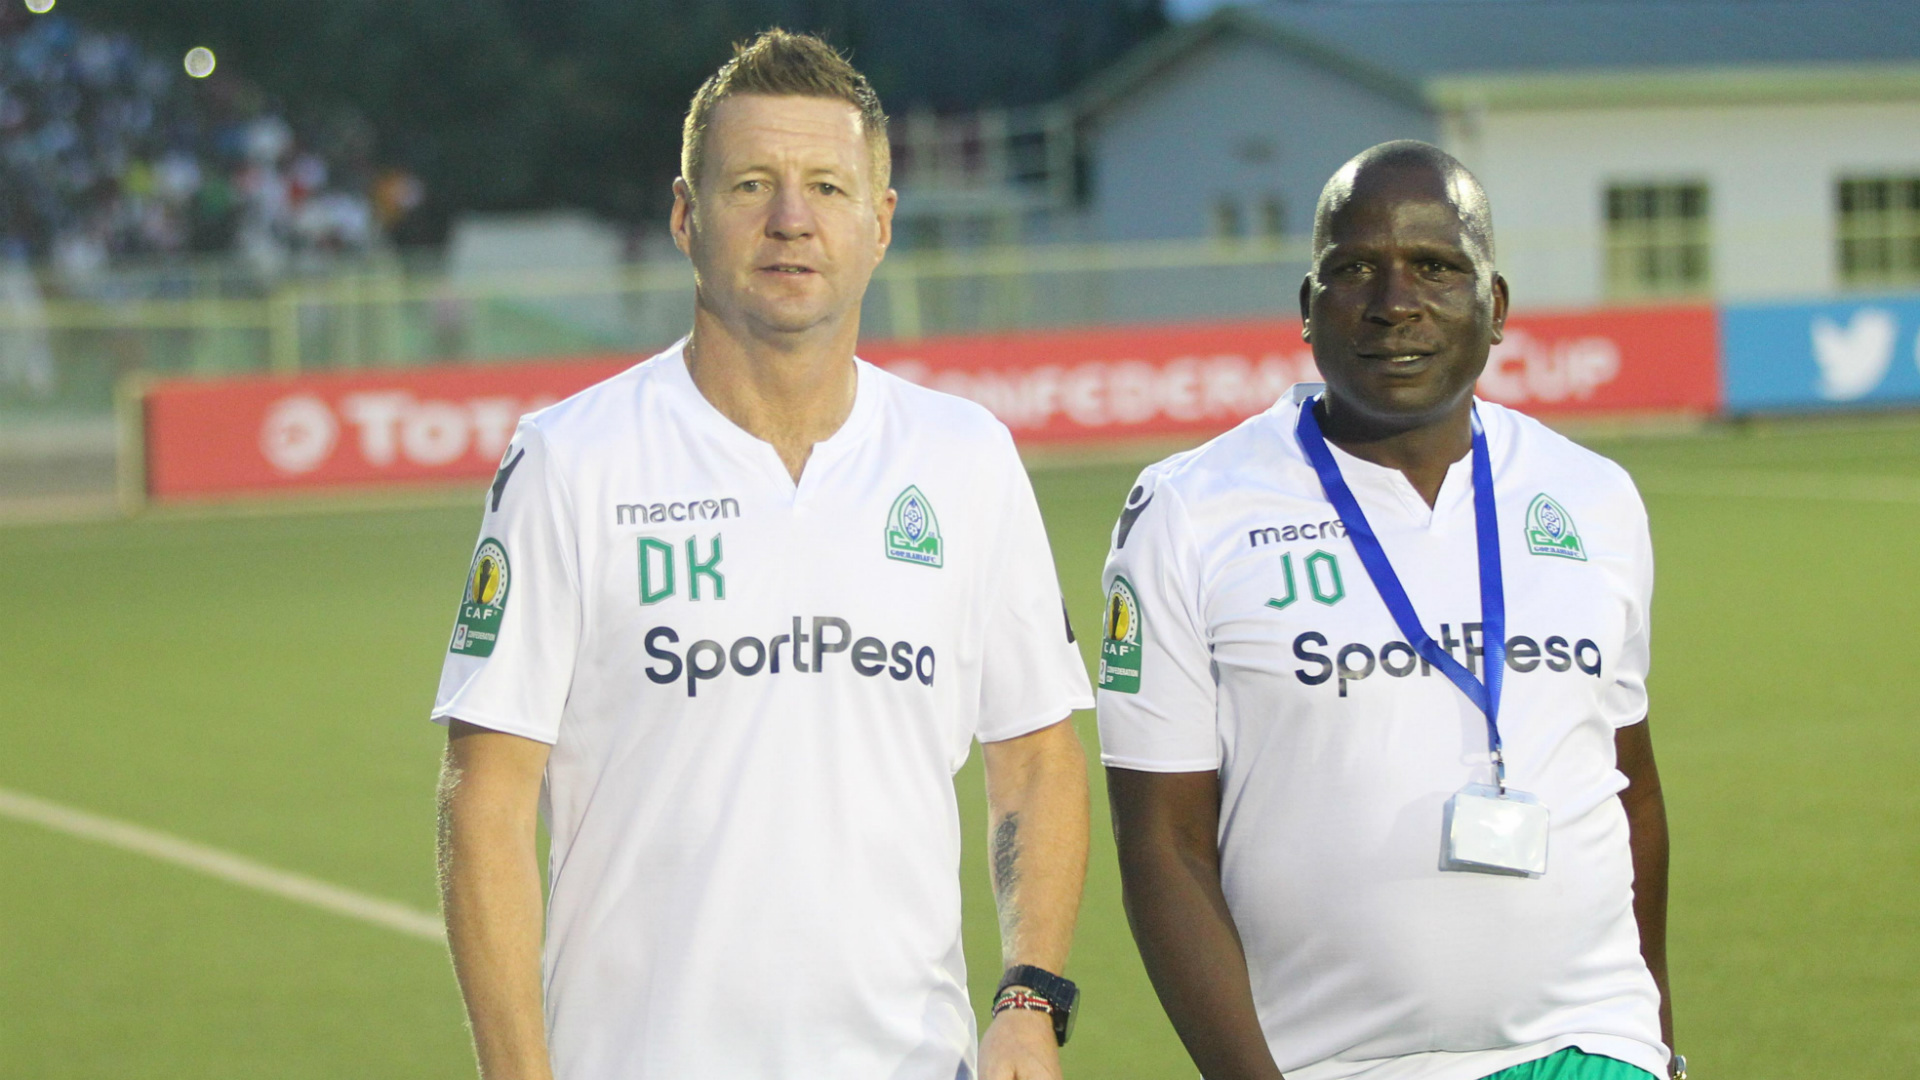 KPL and SportPesa at crossroad over Gor Mahia v Hull City friendly